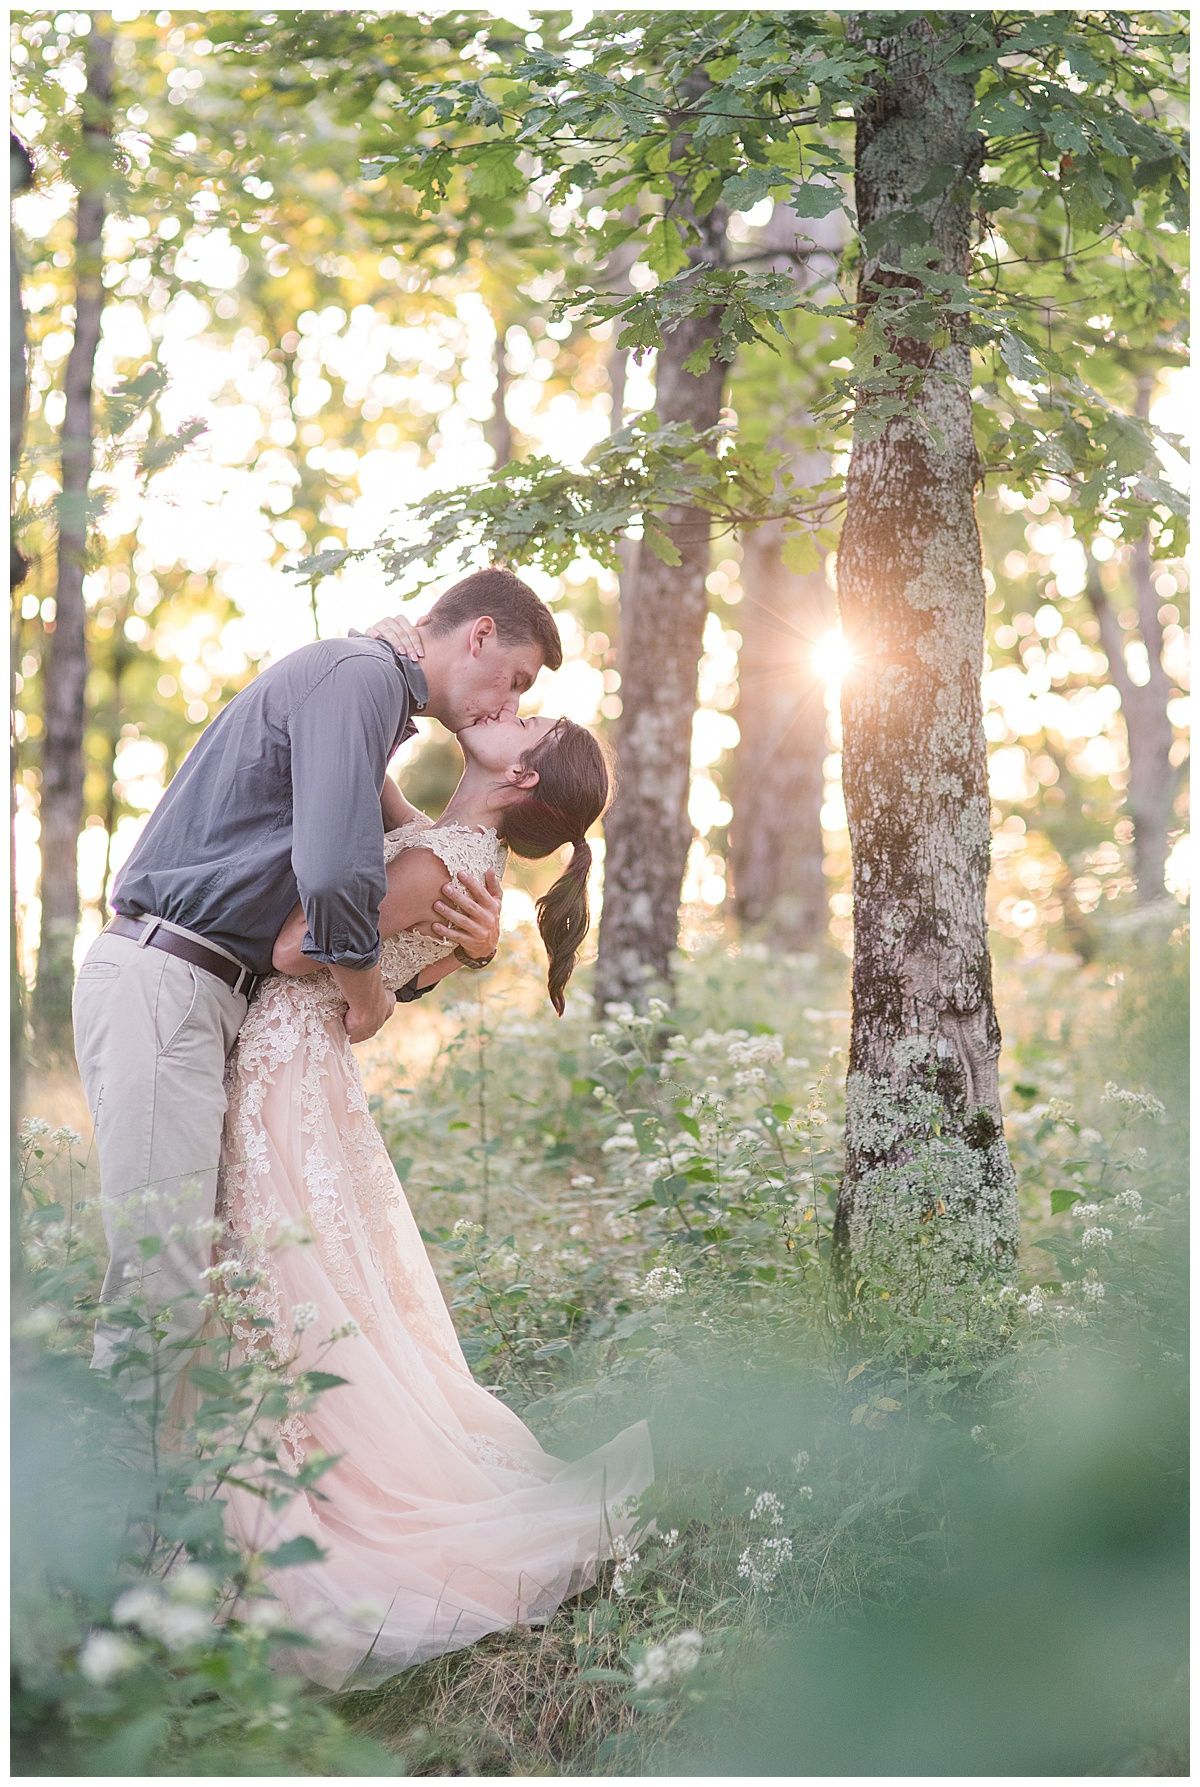 Elopement Photography in Northern Mountains (With